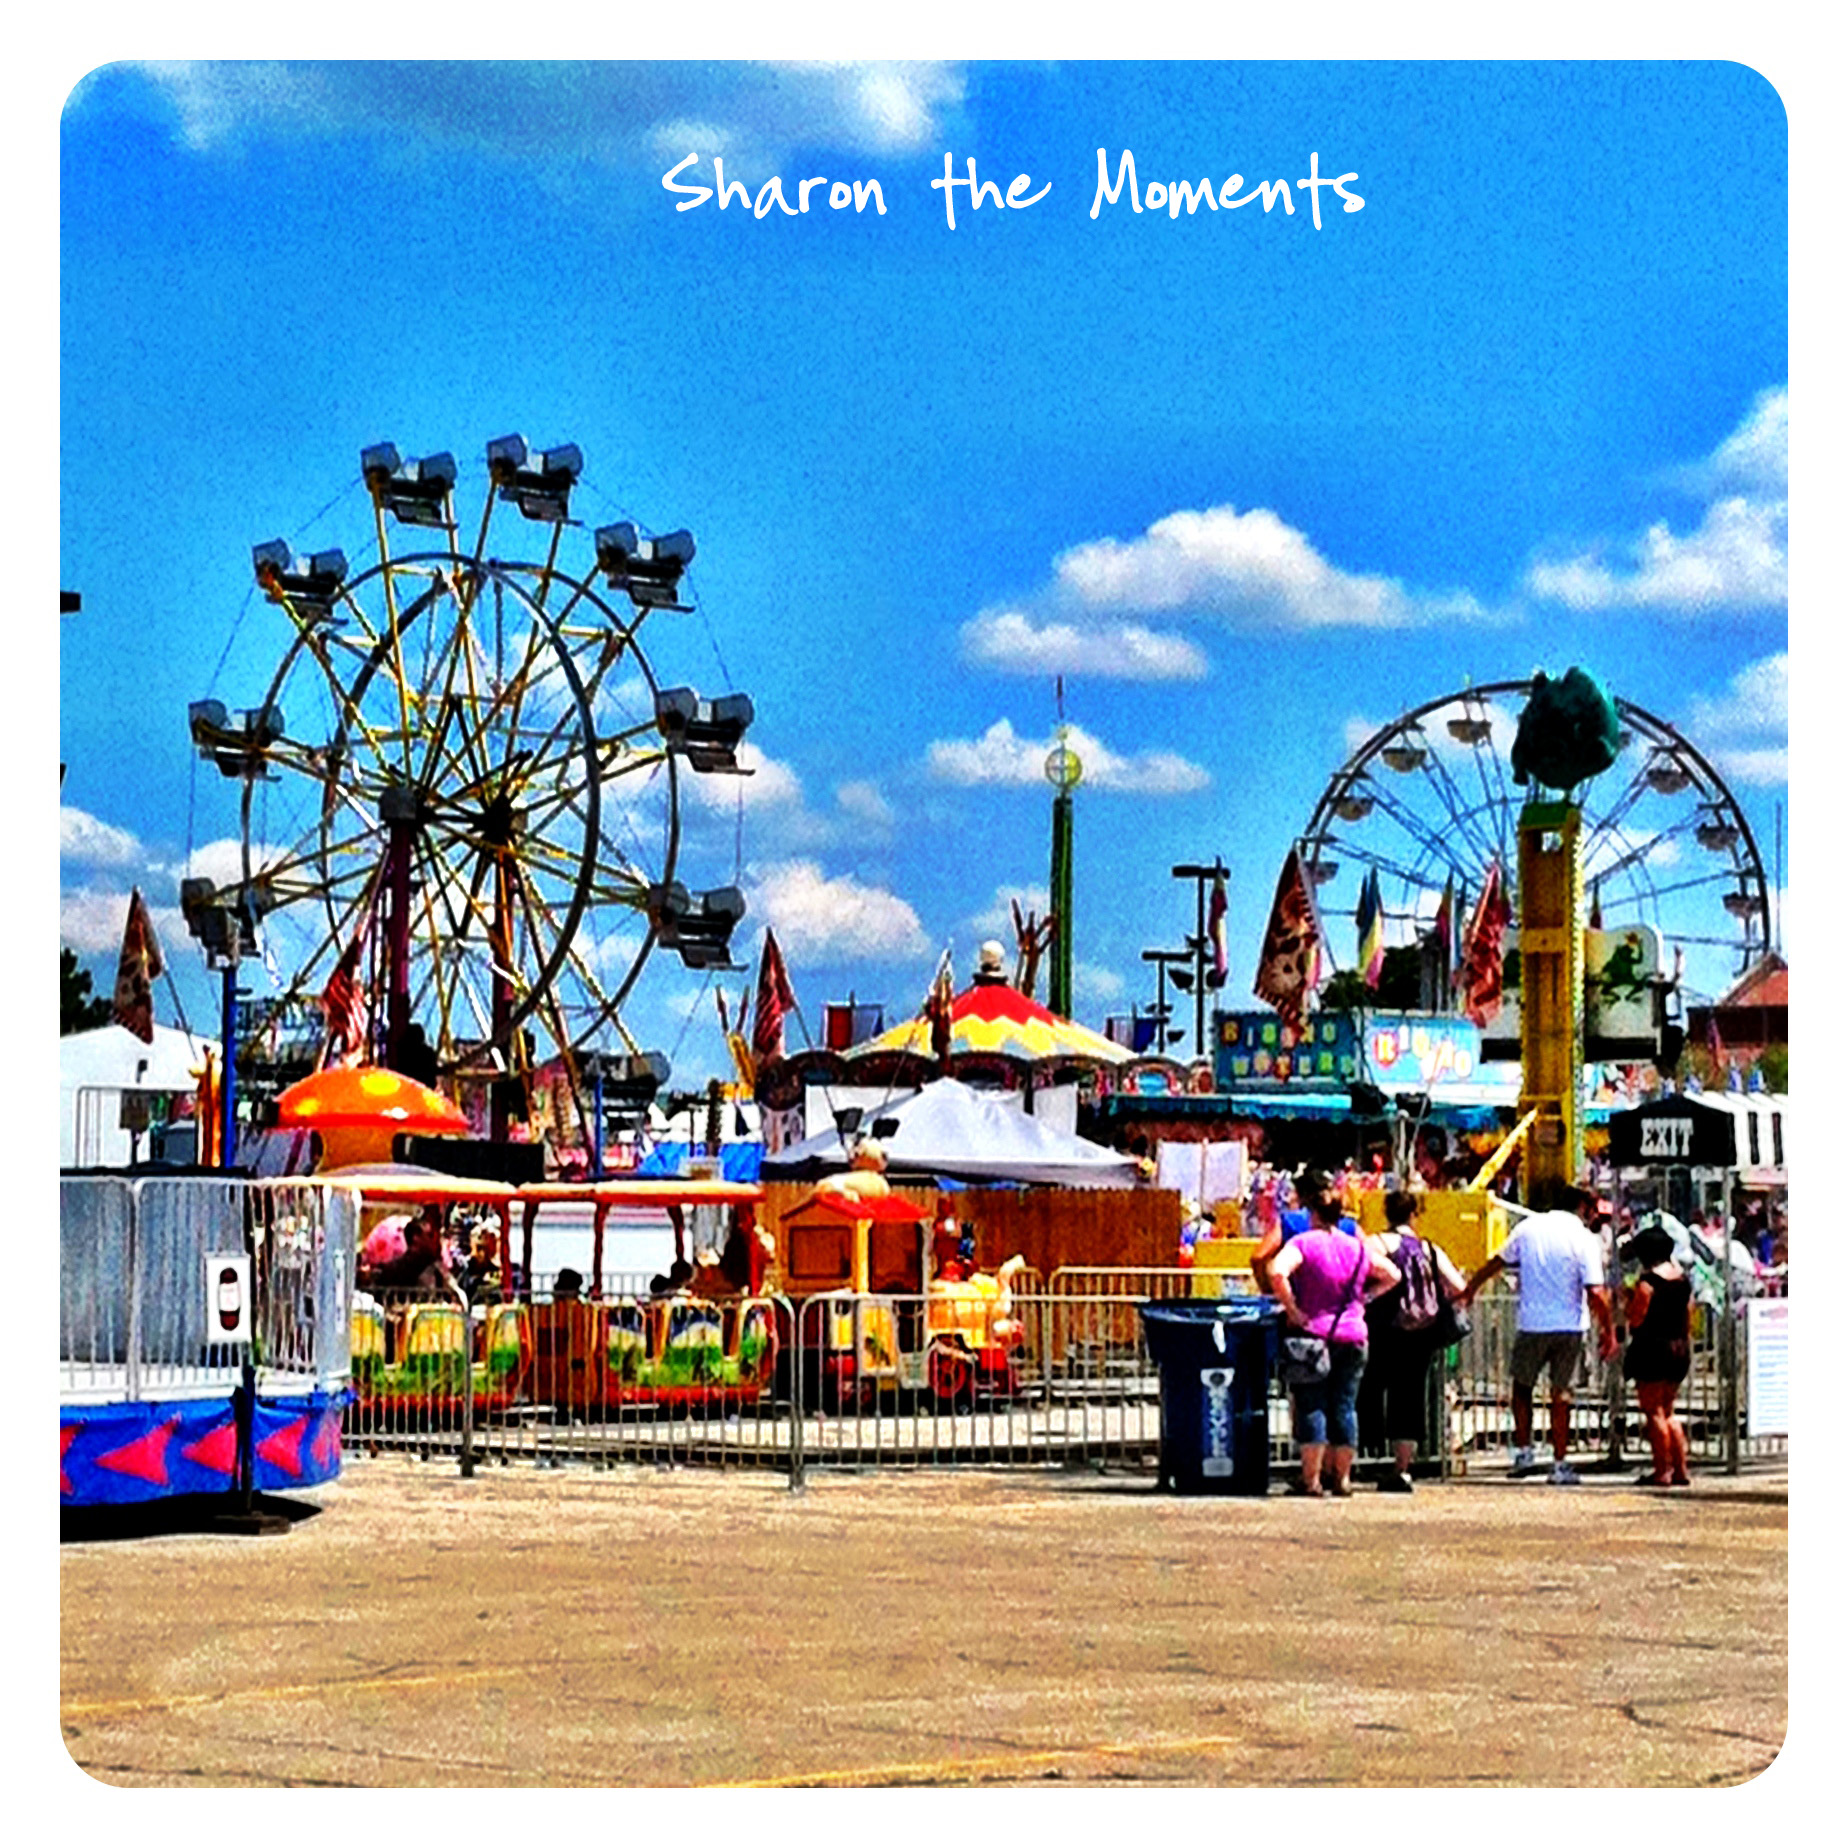 Ohio State Fair Ferris Wheel in the Midway Sharon the Moments blog